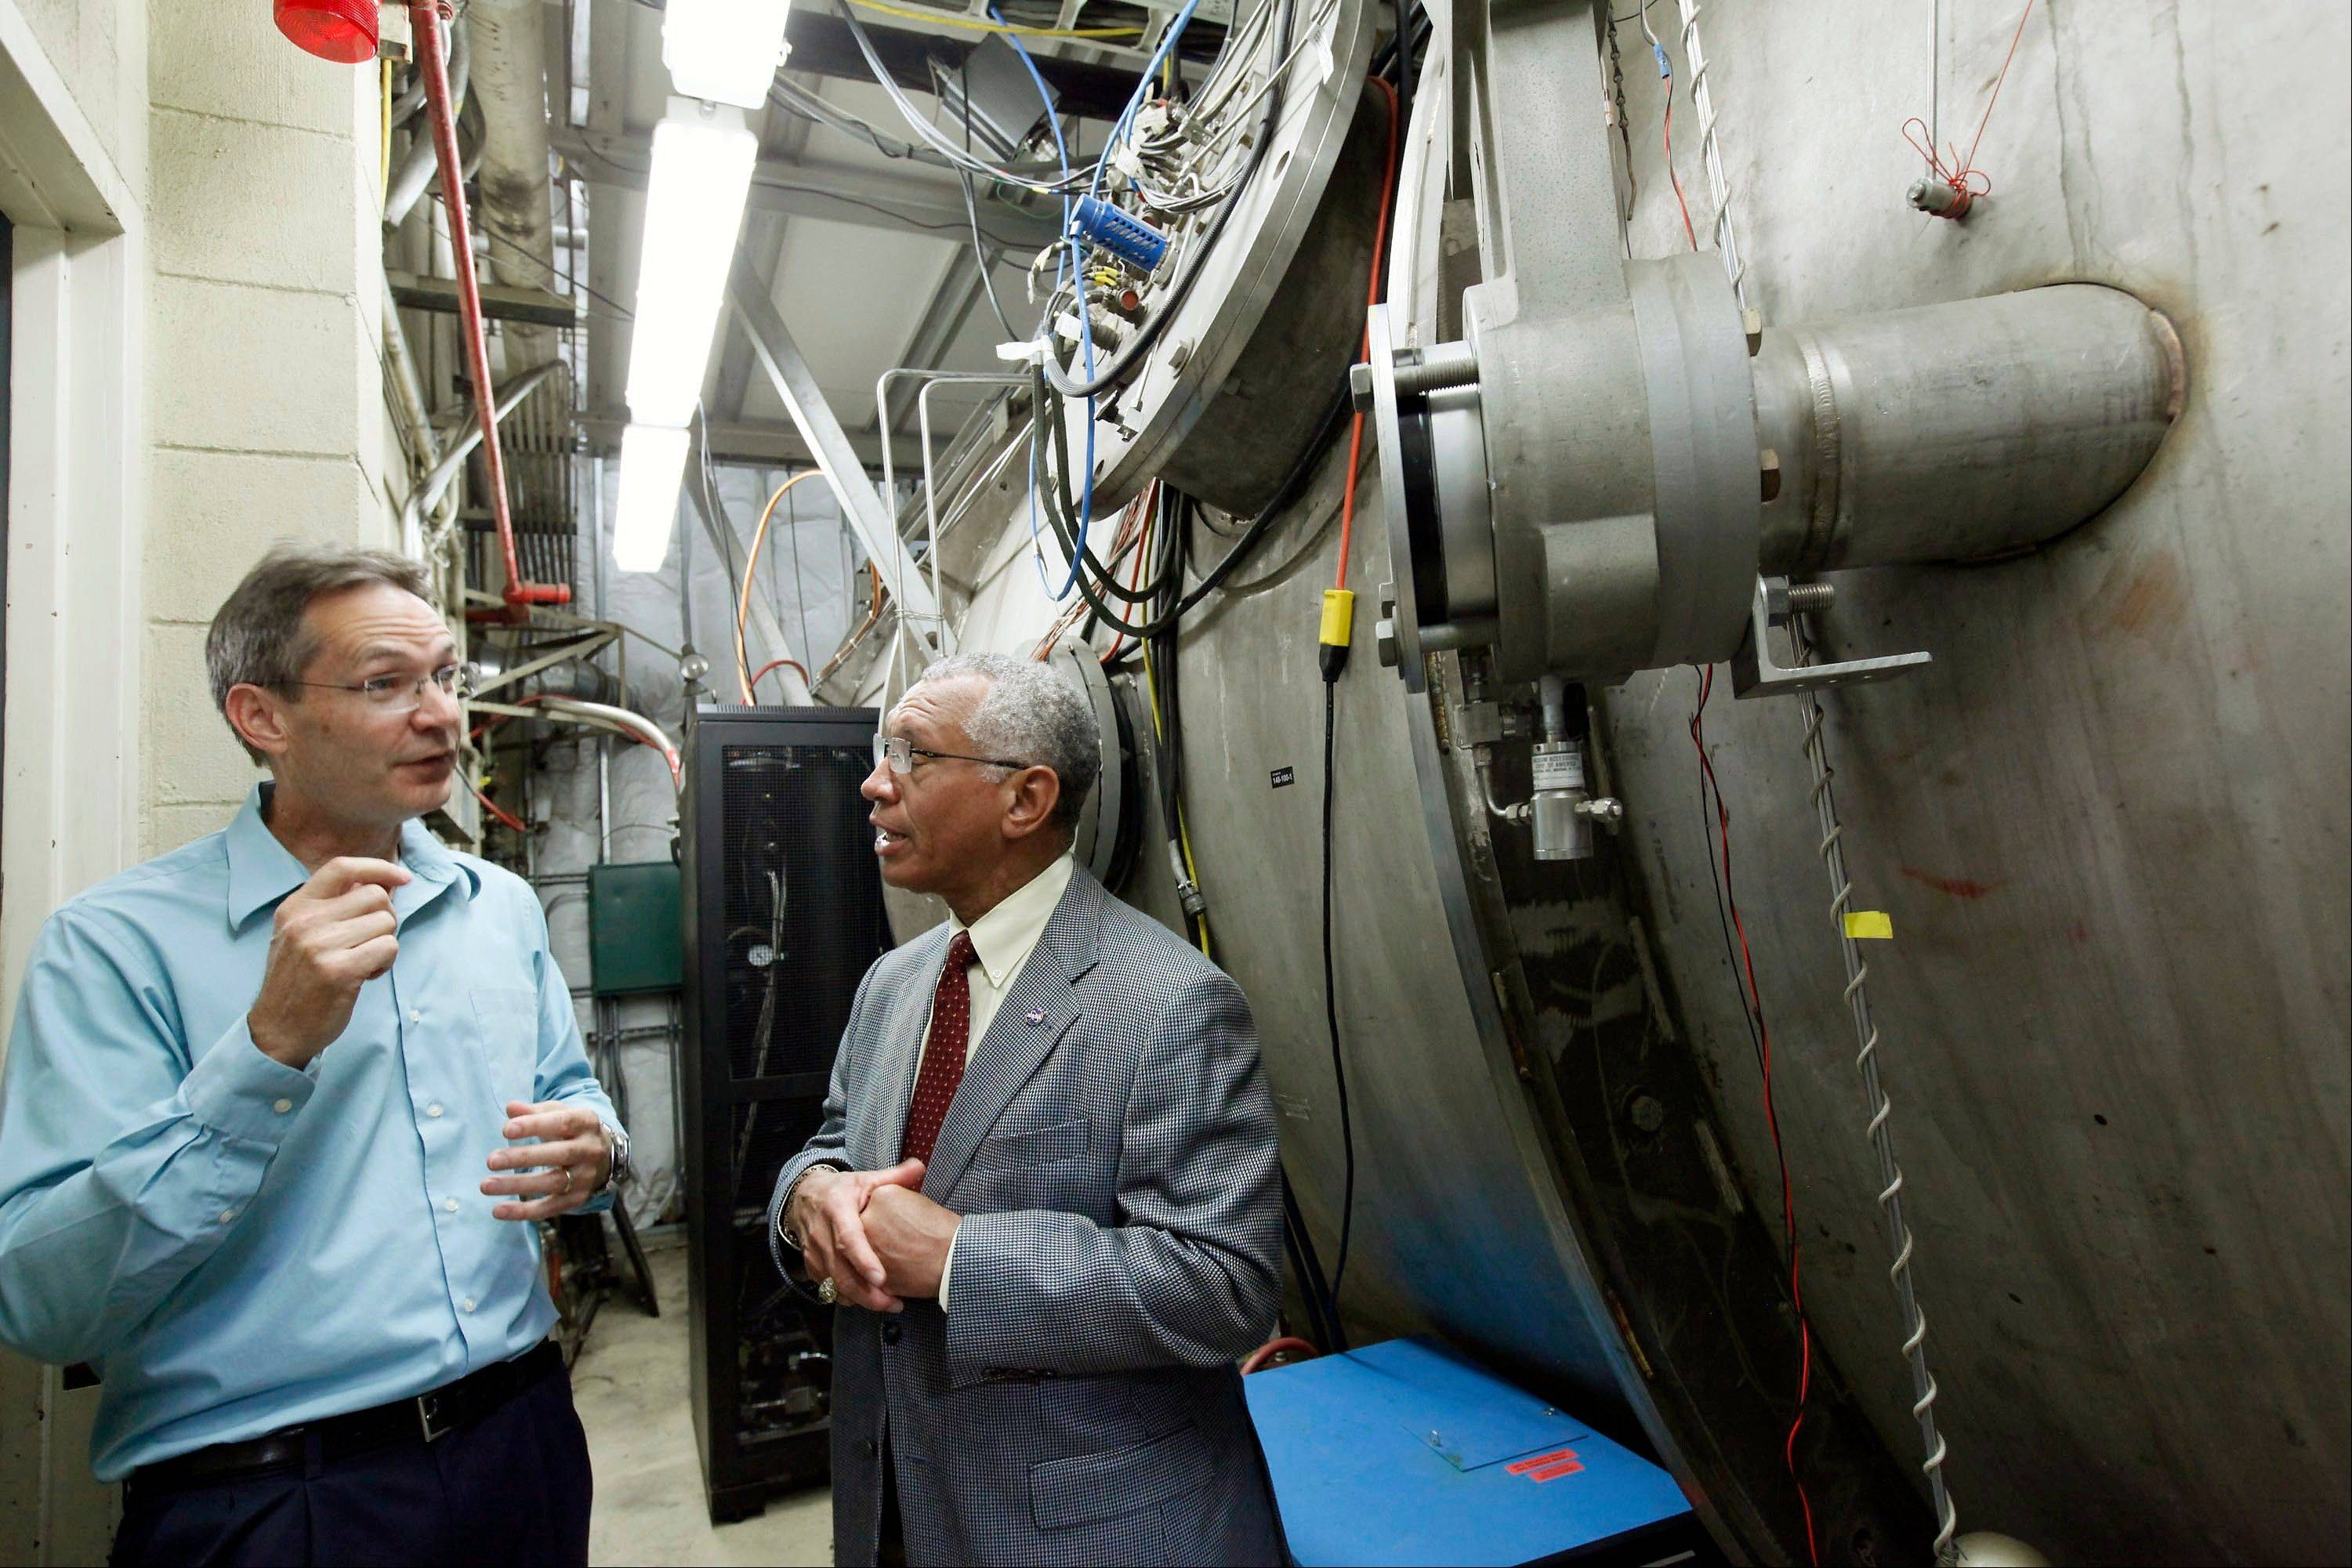 NASA Administrator Charles Bolden, right, talks with electric propulsion engineer John Brophy during a Thursday visit to Nasa�s Jet Propulsion Laboratory in Pasadena, Calif.